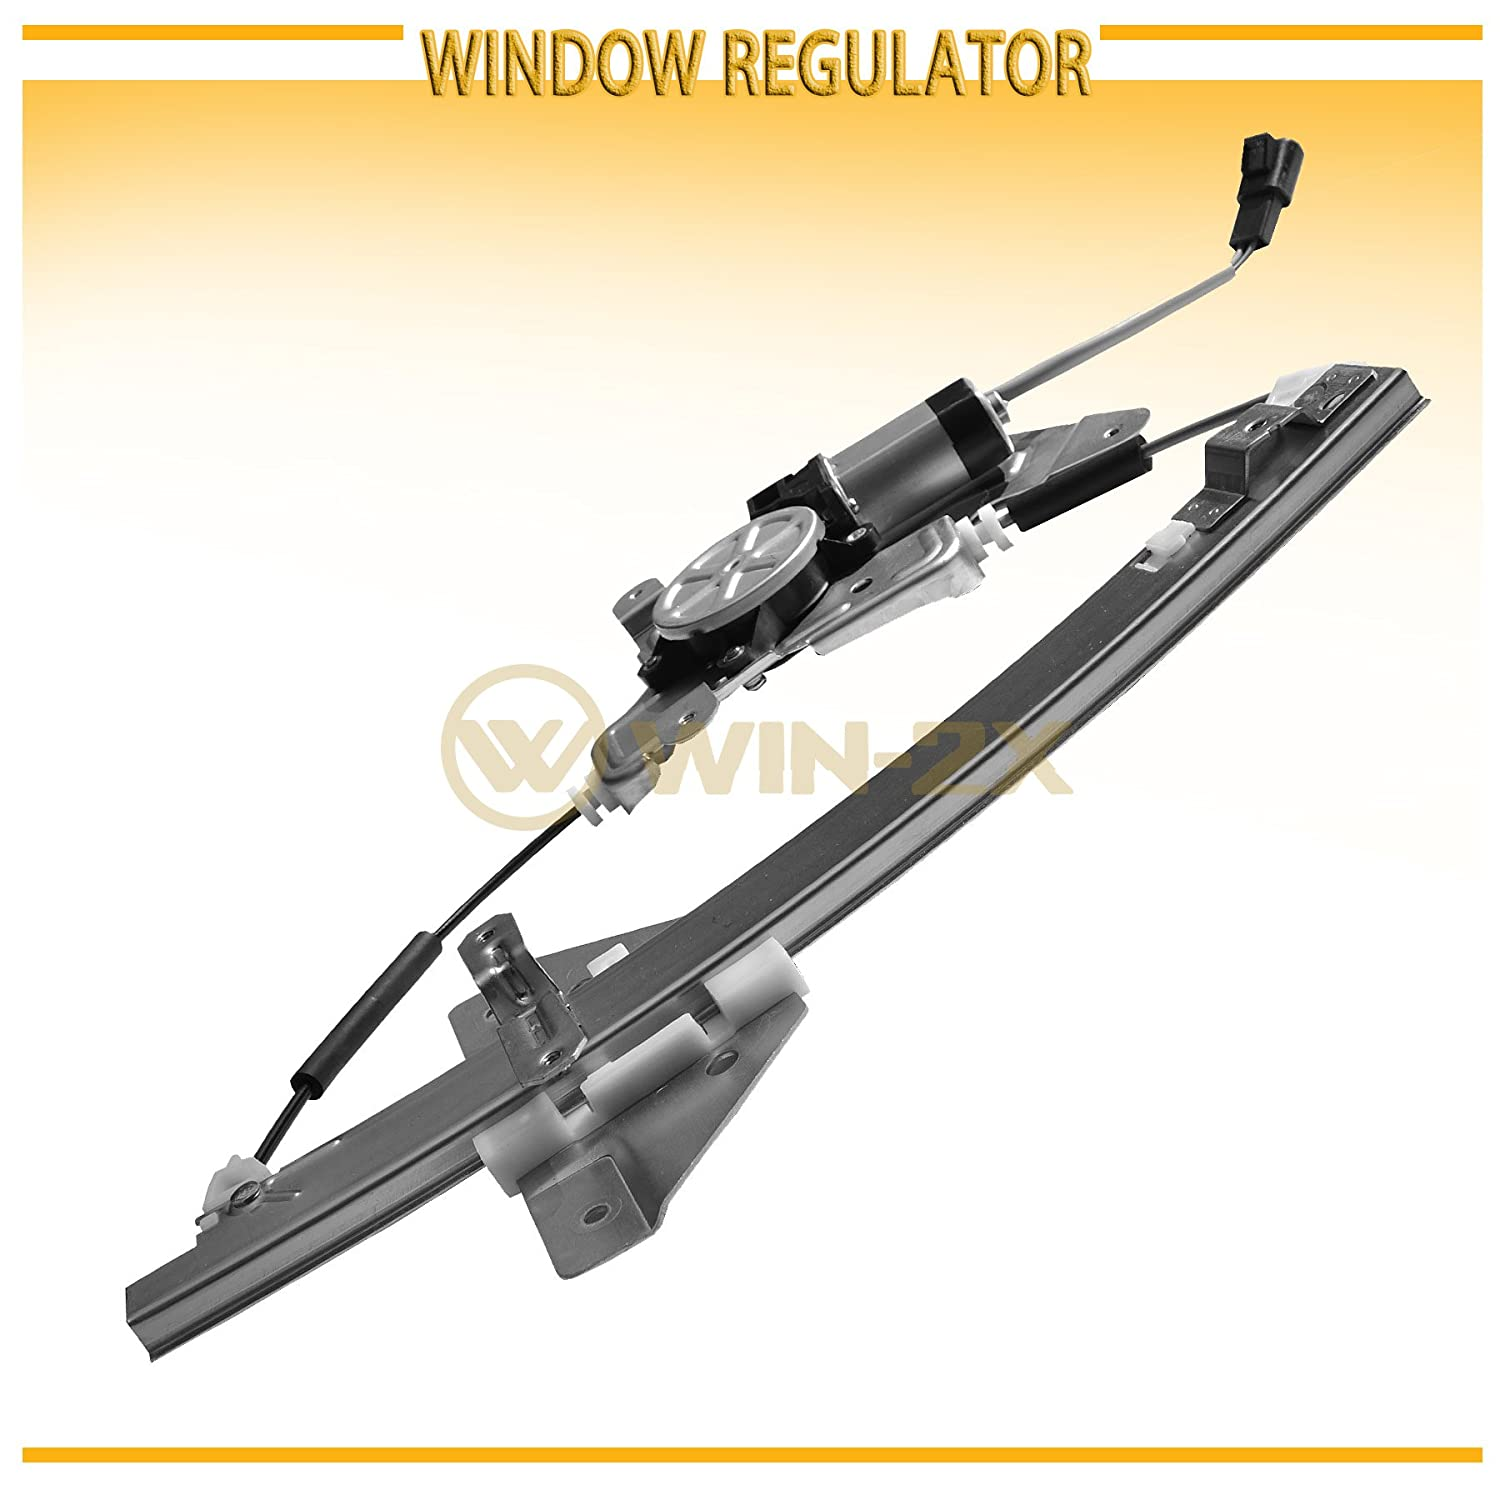 Win 2x New 1pc Rear Passenger Right Side Power Window 2004 Pontiac Grandam Motor And Regulator Assembly With Fit 99 04 Oldsmobile Alero 05 Grand Am 4 Door